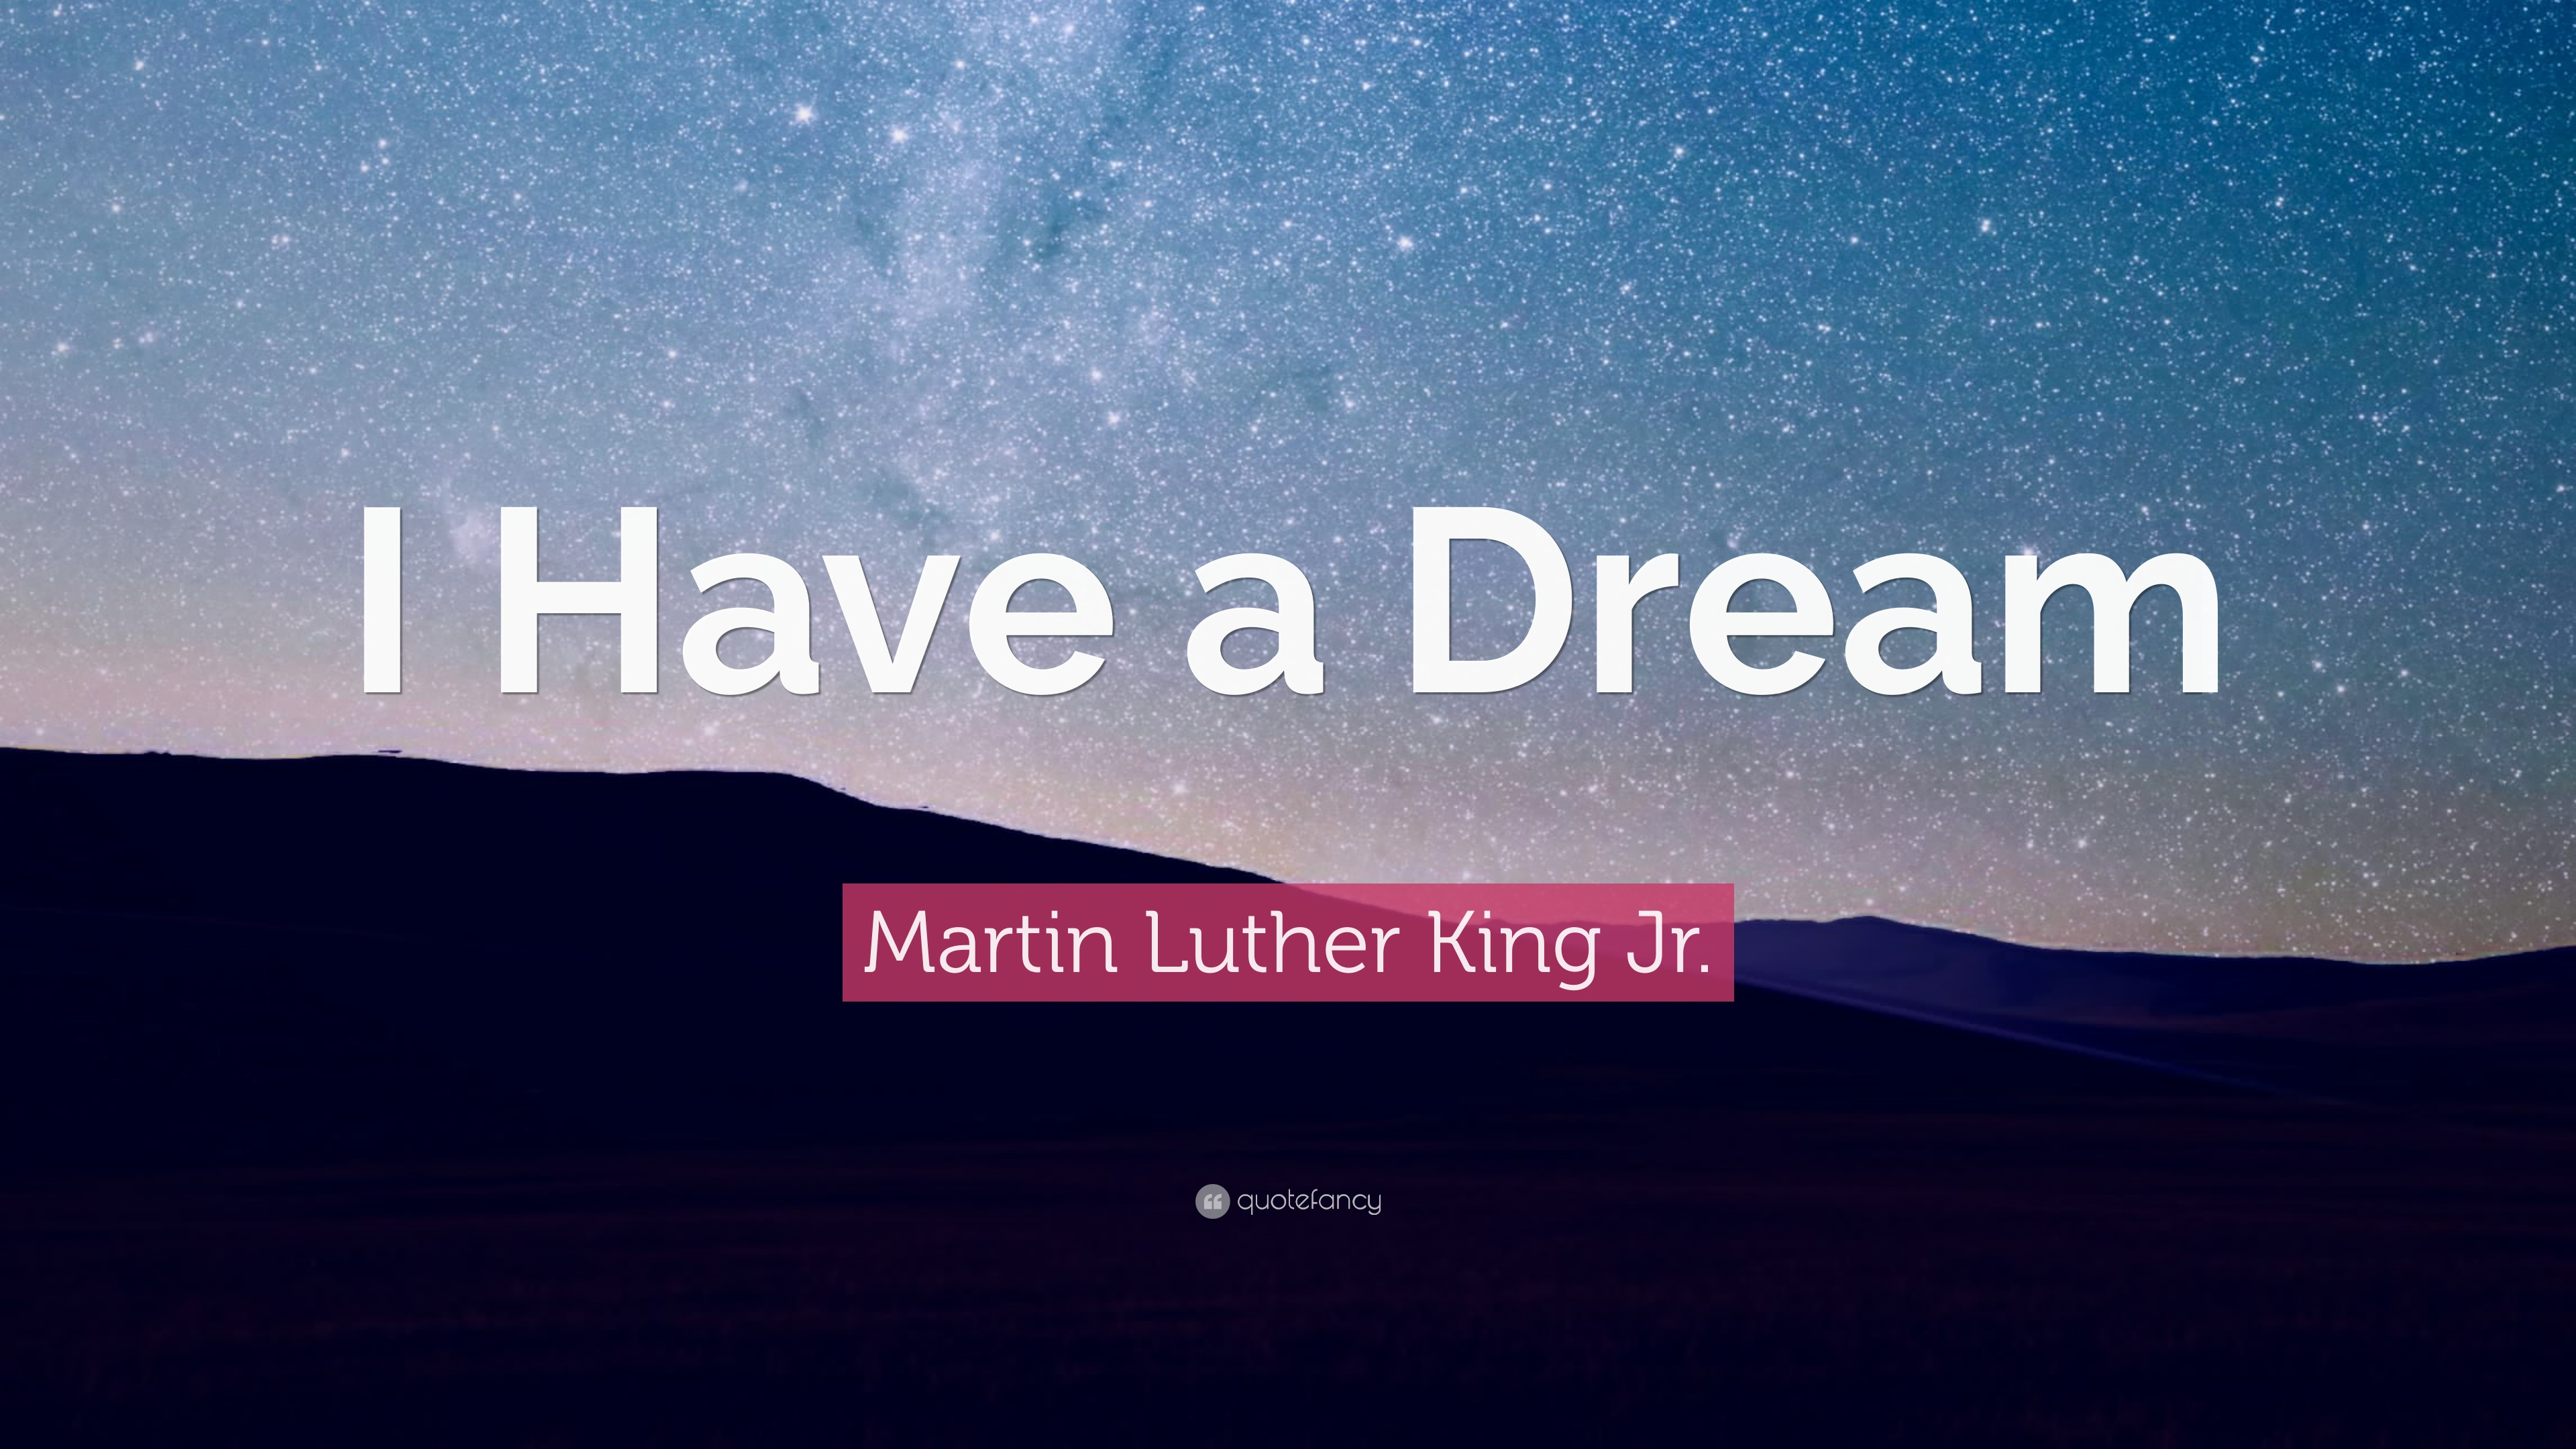 Martin Luther King Jr. Quote: I Have a Dream